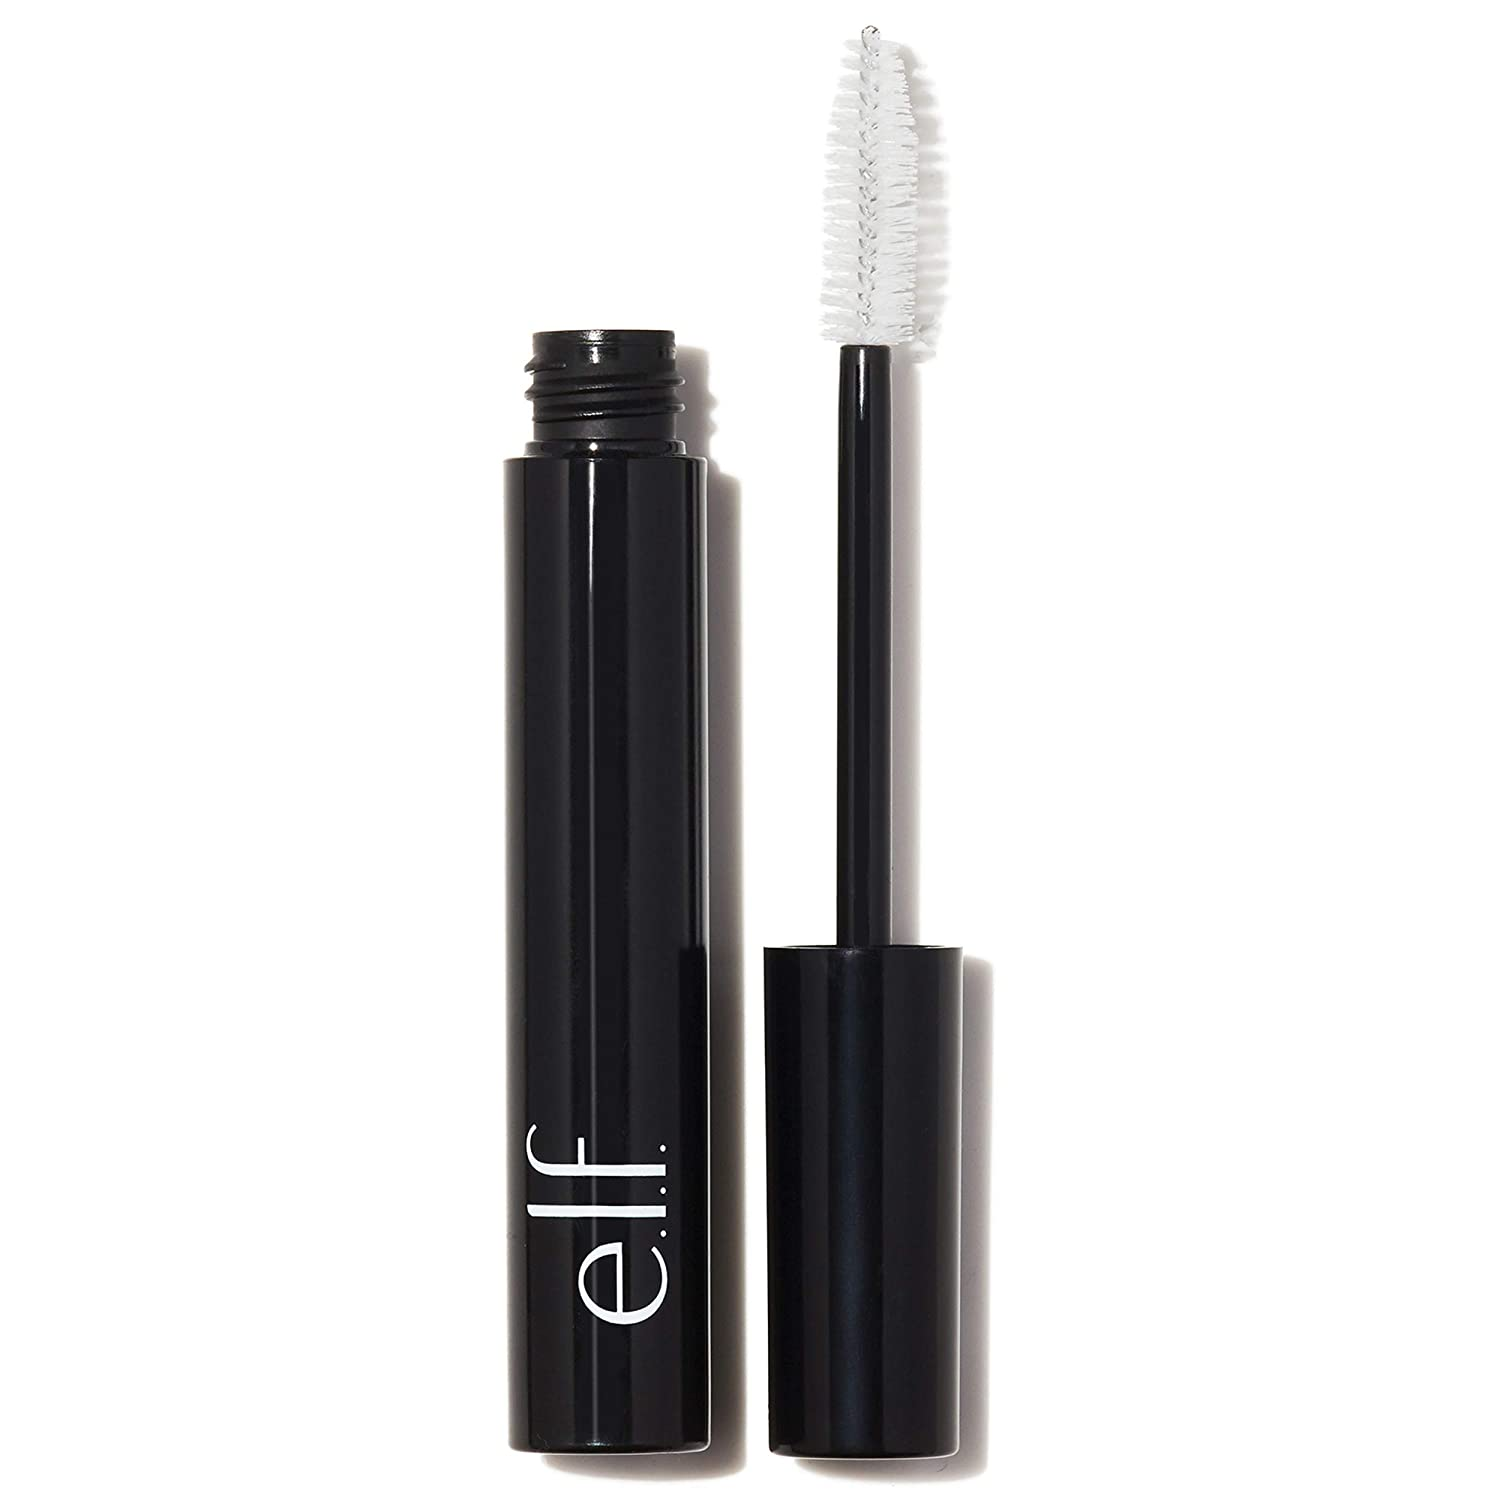 e.l.f. Mascara Primer for Length and Volume, 0.253 fl. oz.